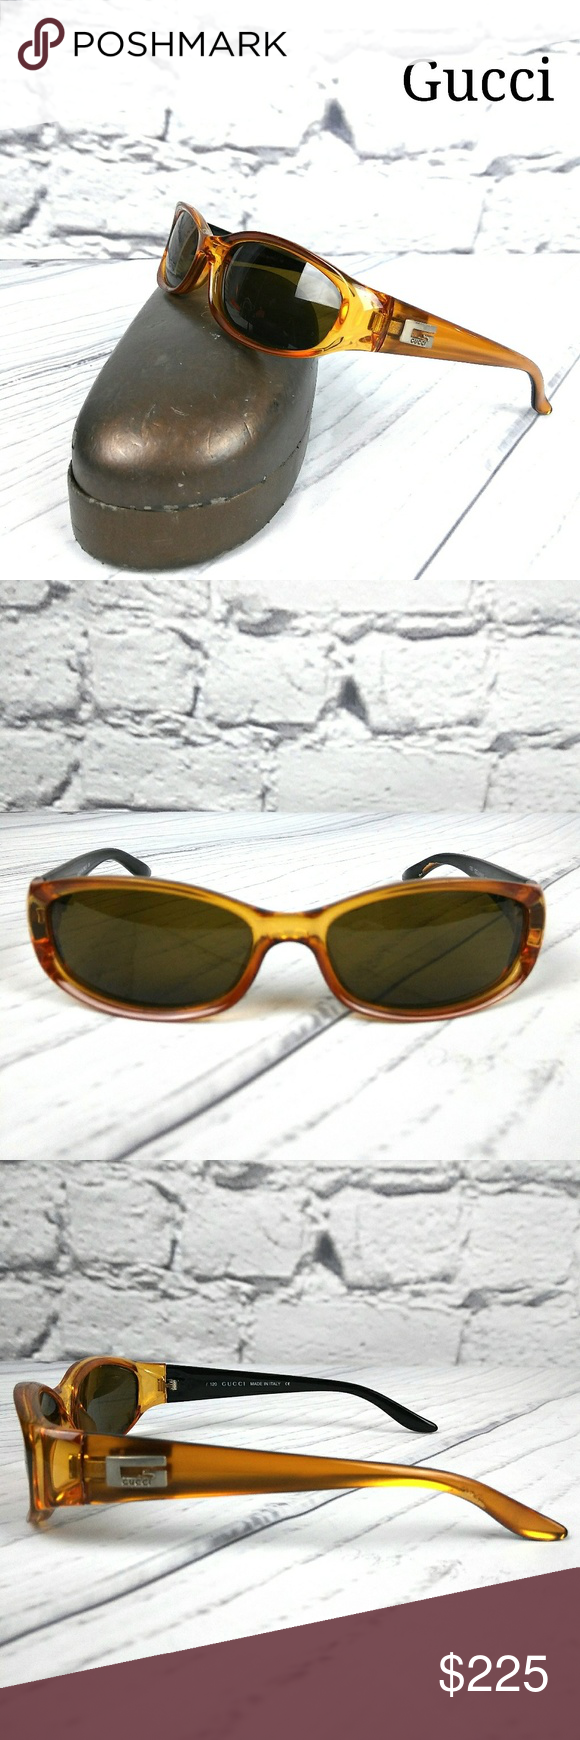 987ff7da491 Spotted while shopping on Poshmark  Gucci Vintage Sunglasses!  poshmark   fashion  shopping